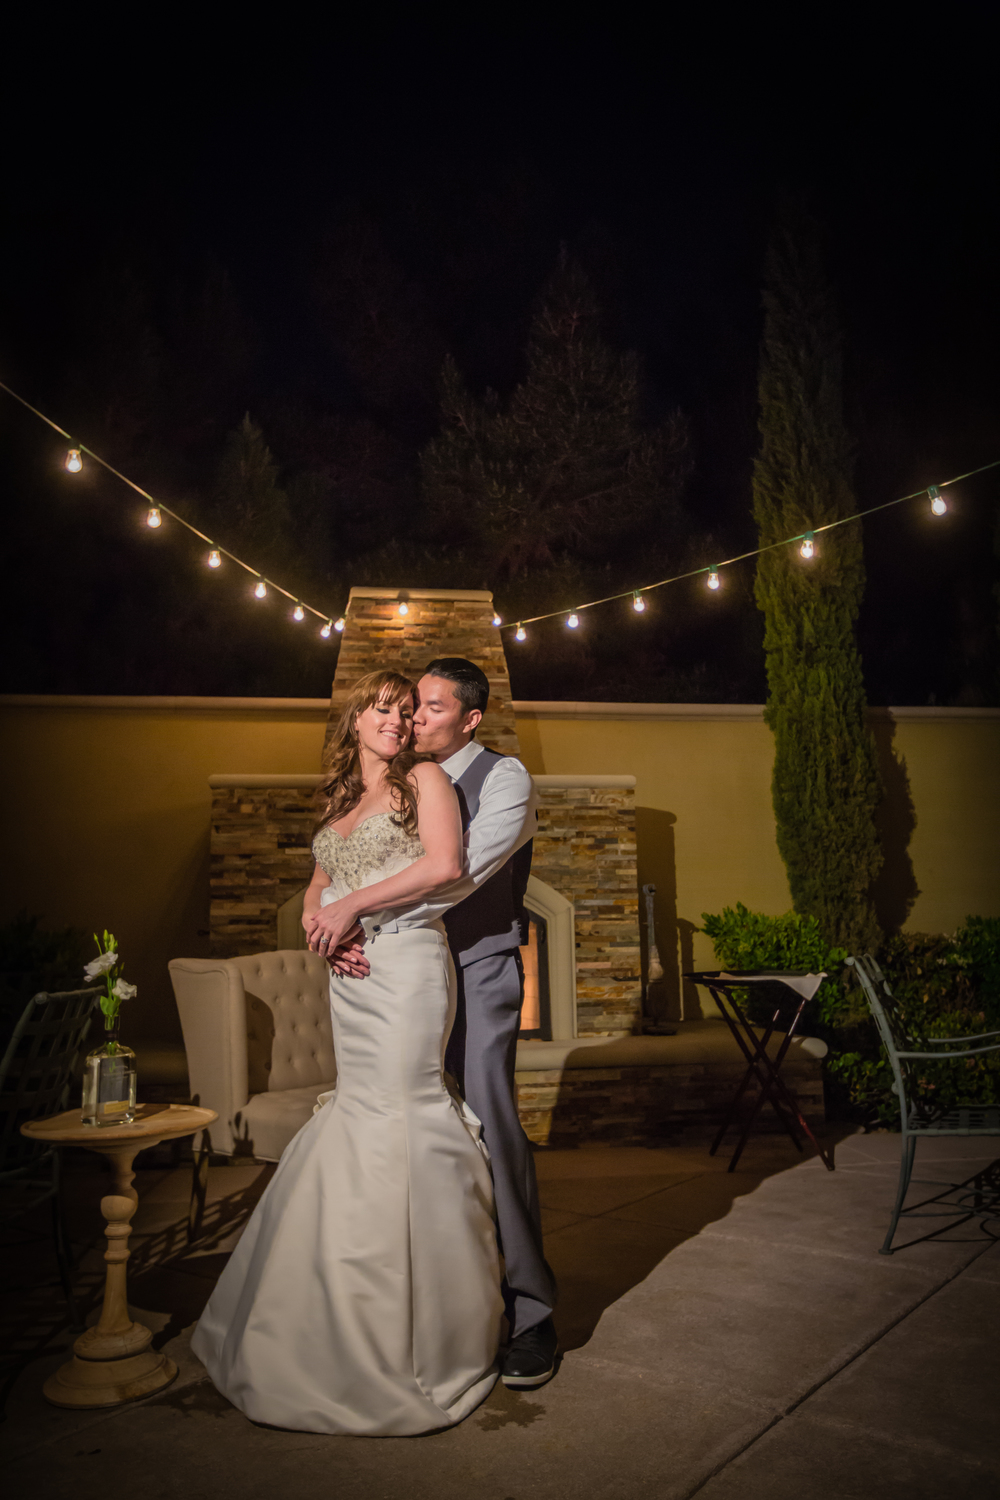 Newlyweds enjoying a quite moment by the fire place, under the bistro lighting. Las Vegas Wedding at Siena Golf Club  |  Photography by Ella Gagiano  | Floral and Decor by Naakiti Floral  |  Las Wedding Planner Andrea Eppolito